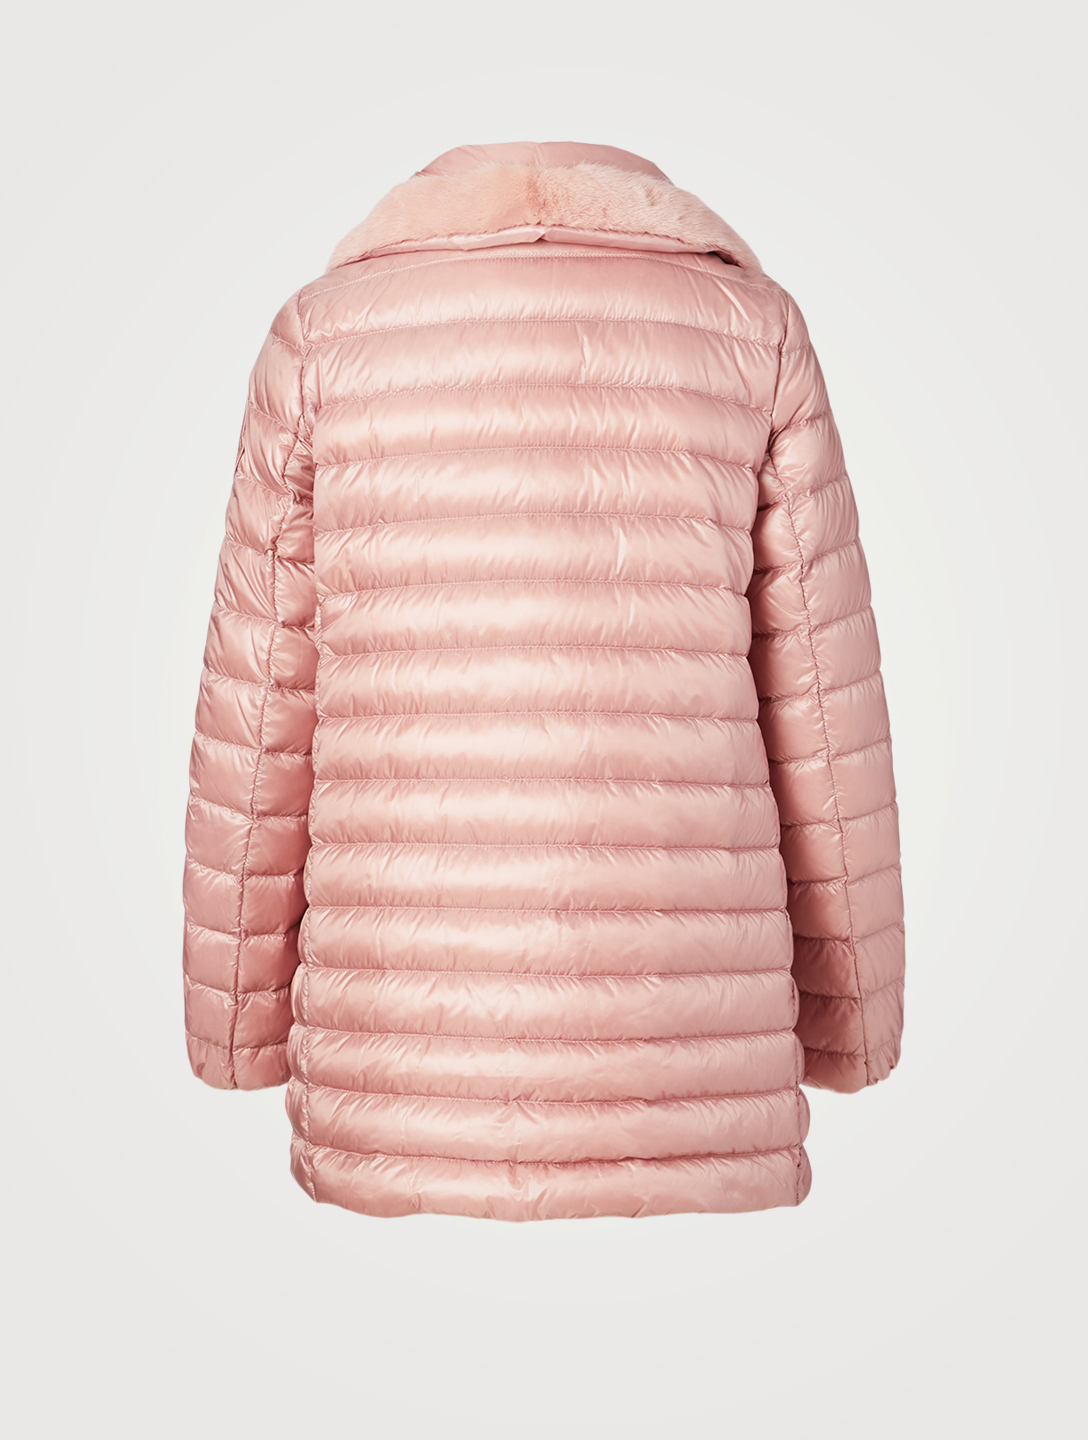 MONCLER Caban Quilted Jacket Women's Pink